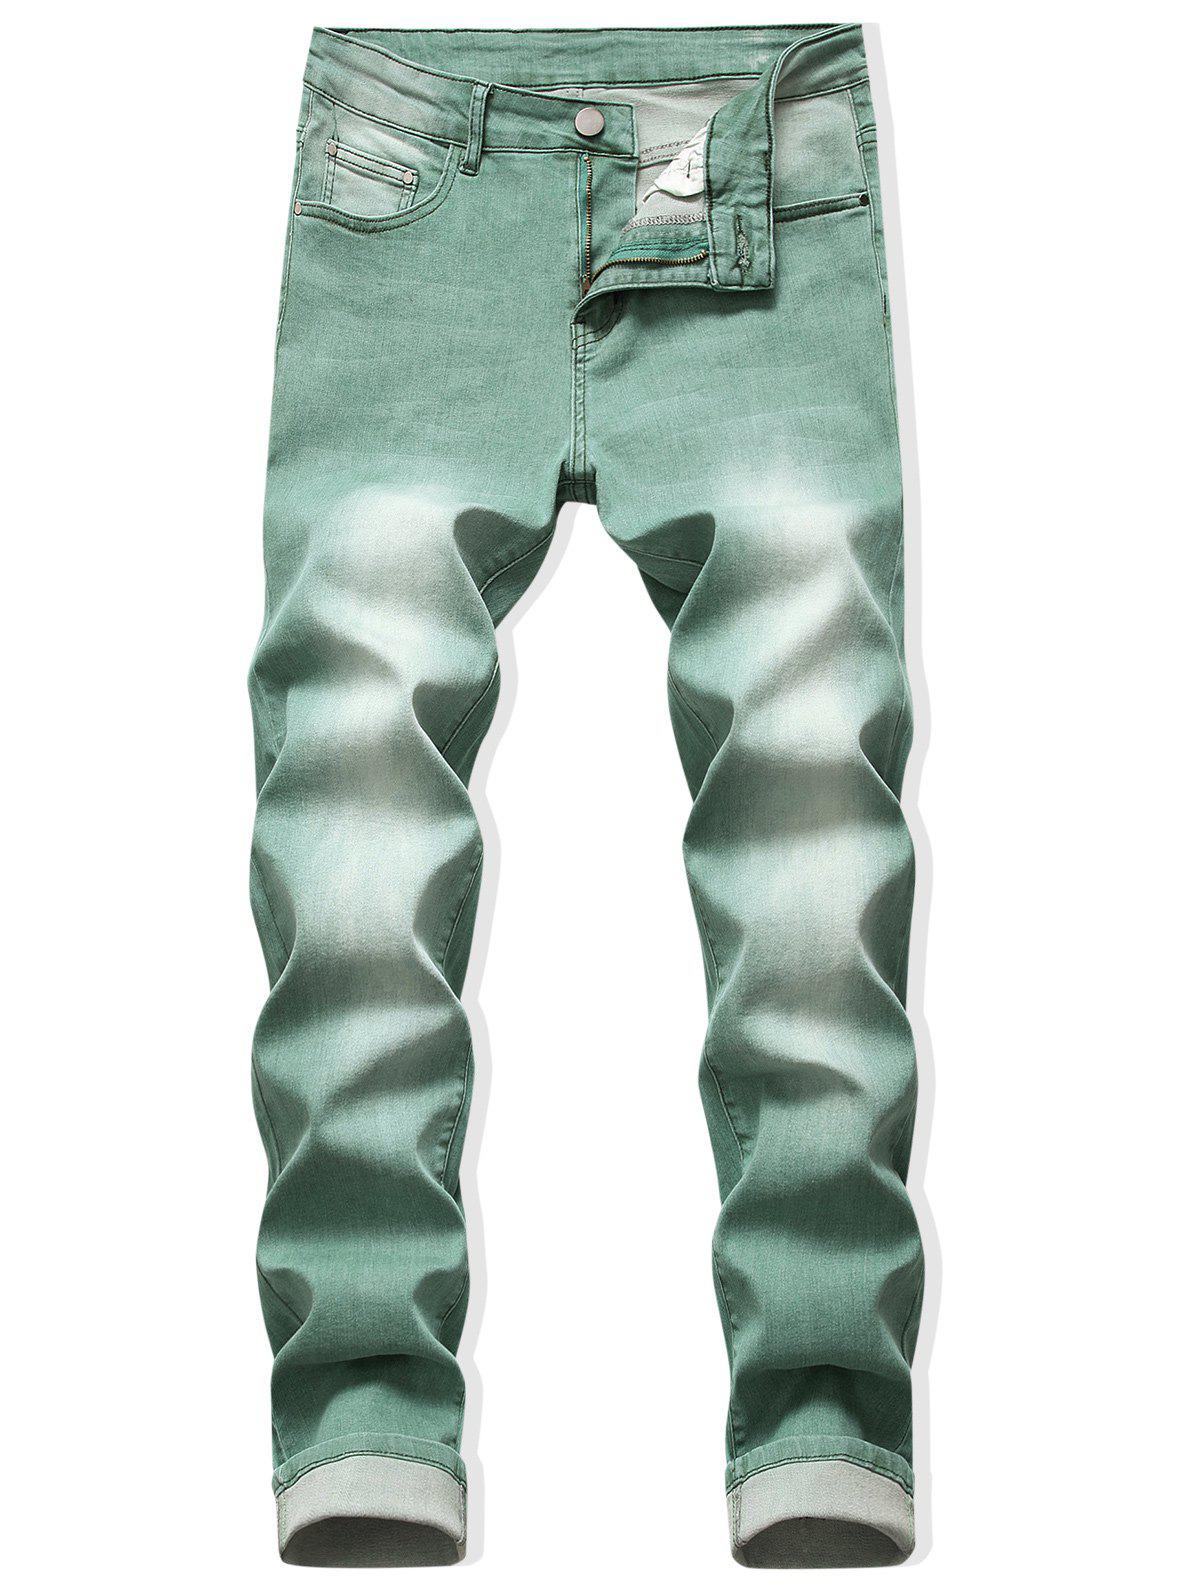 Online Zip Fly Long Faded Wash Casual Jeans